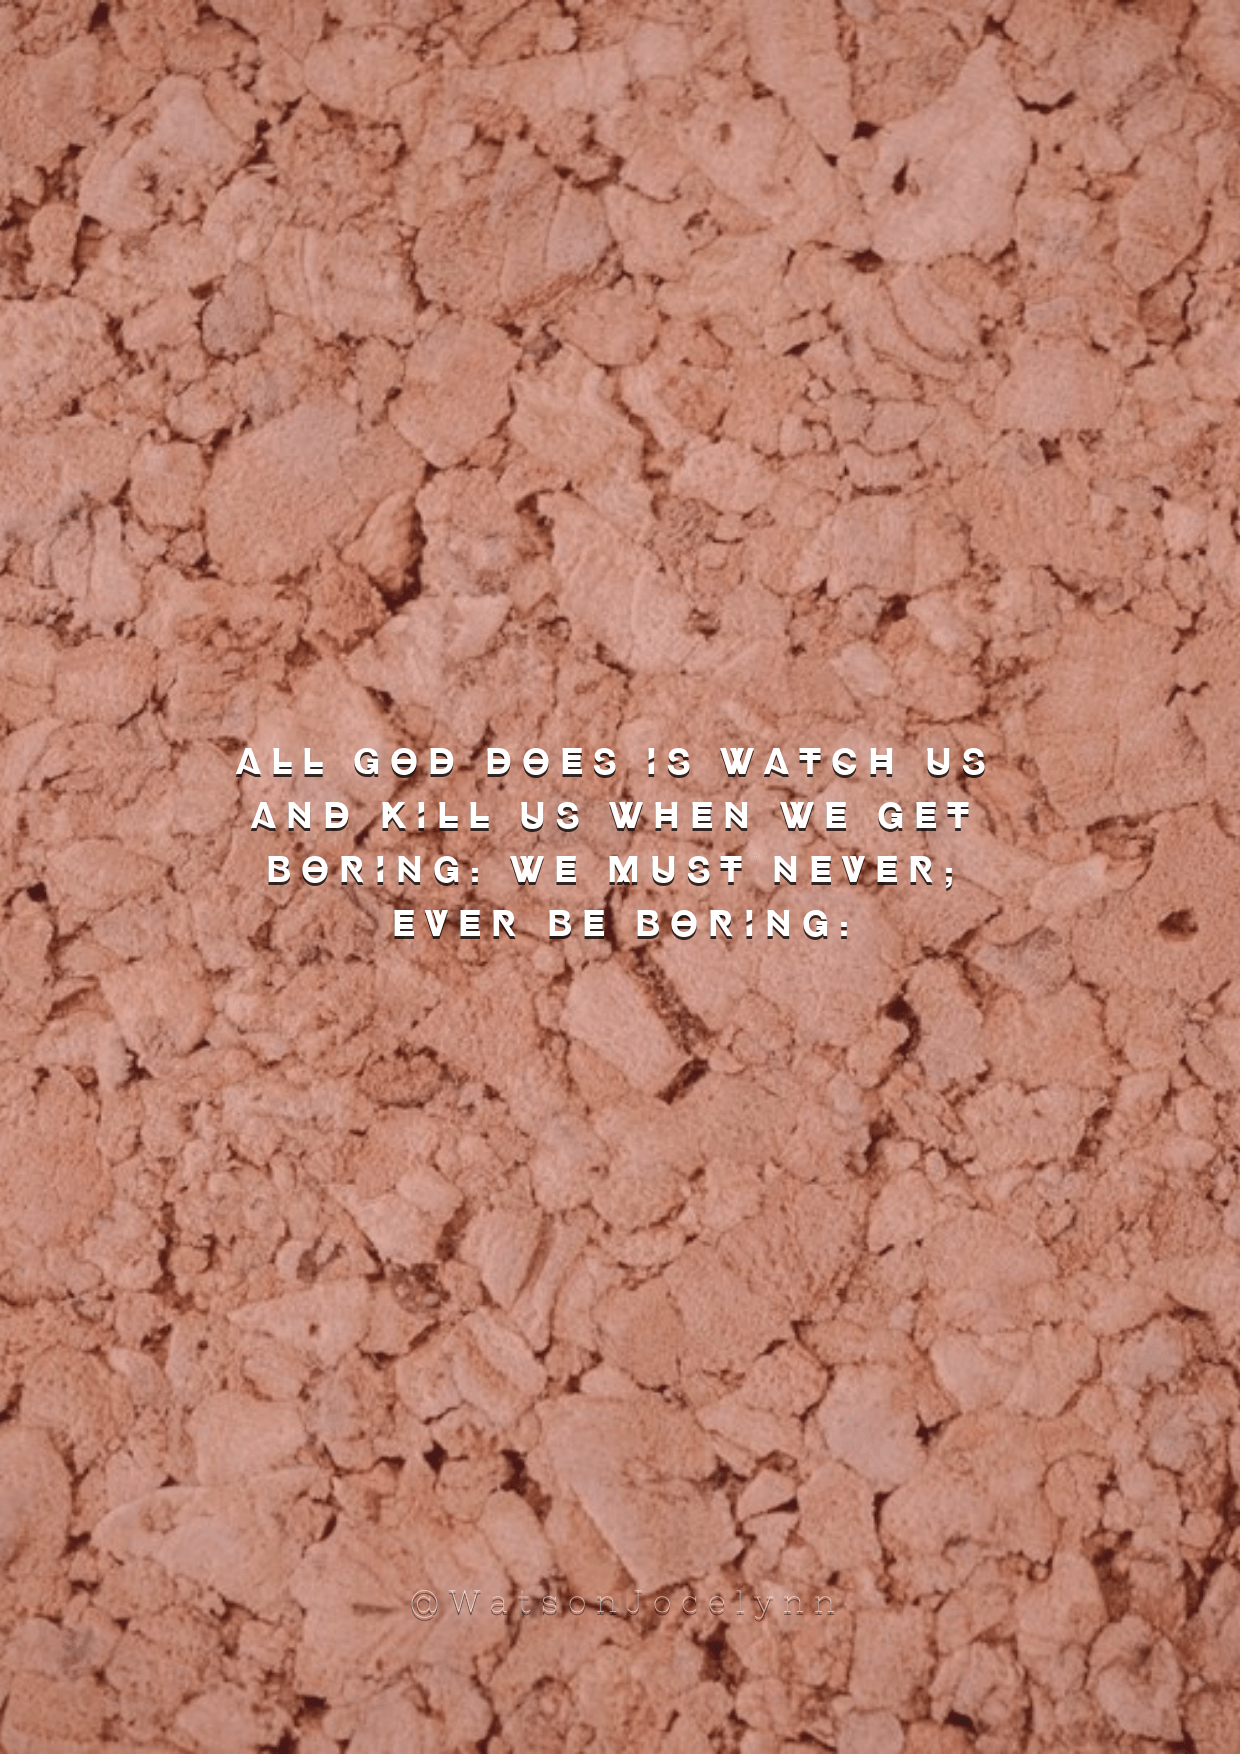 Brown,                Soil,                Material,                Texture,                Wording,                Saying,                Quote,                White,                Yellow,                Red,                 Free Image